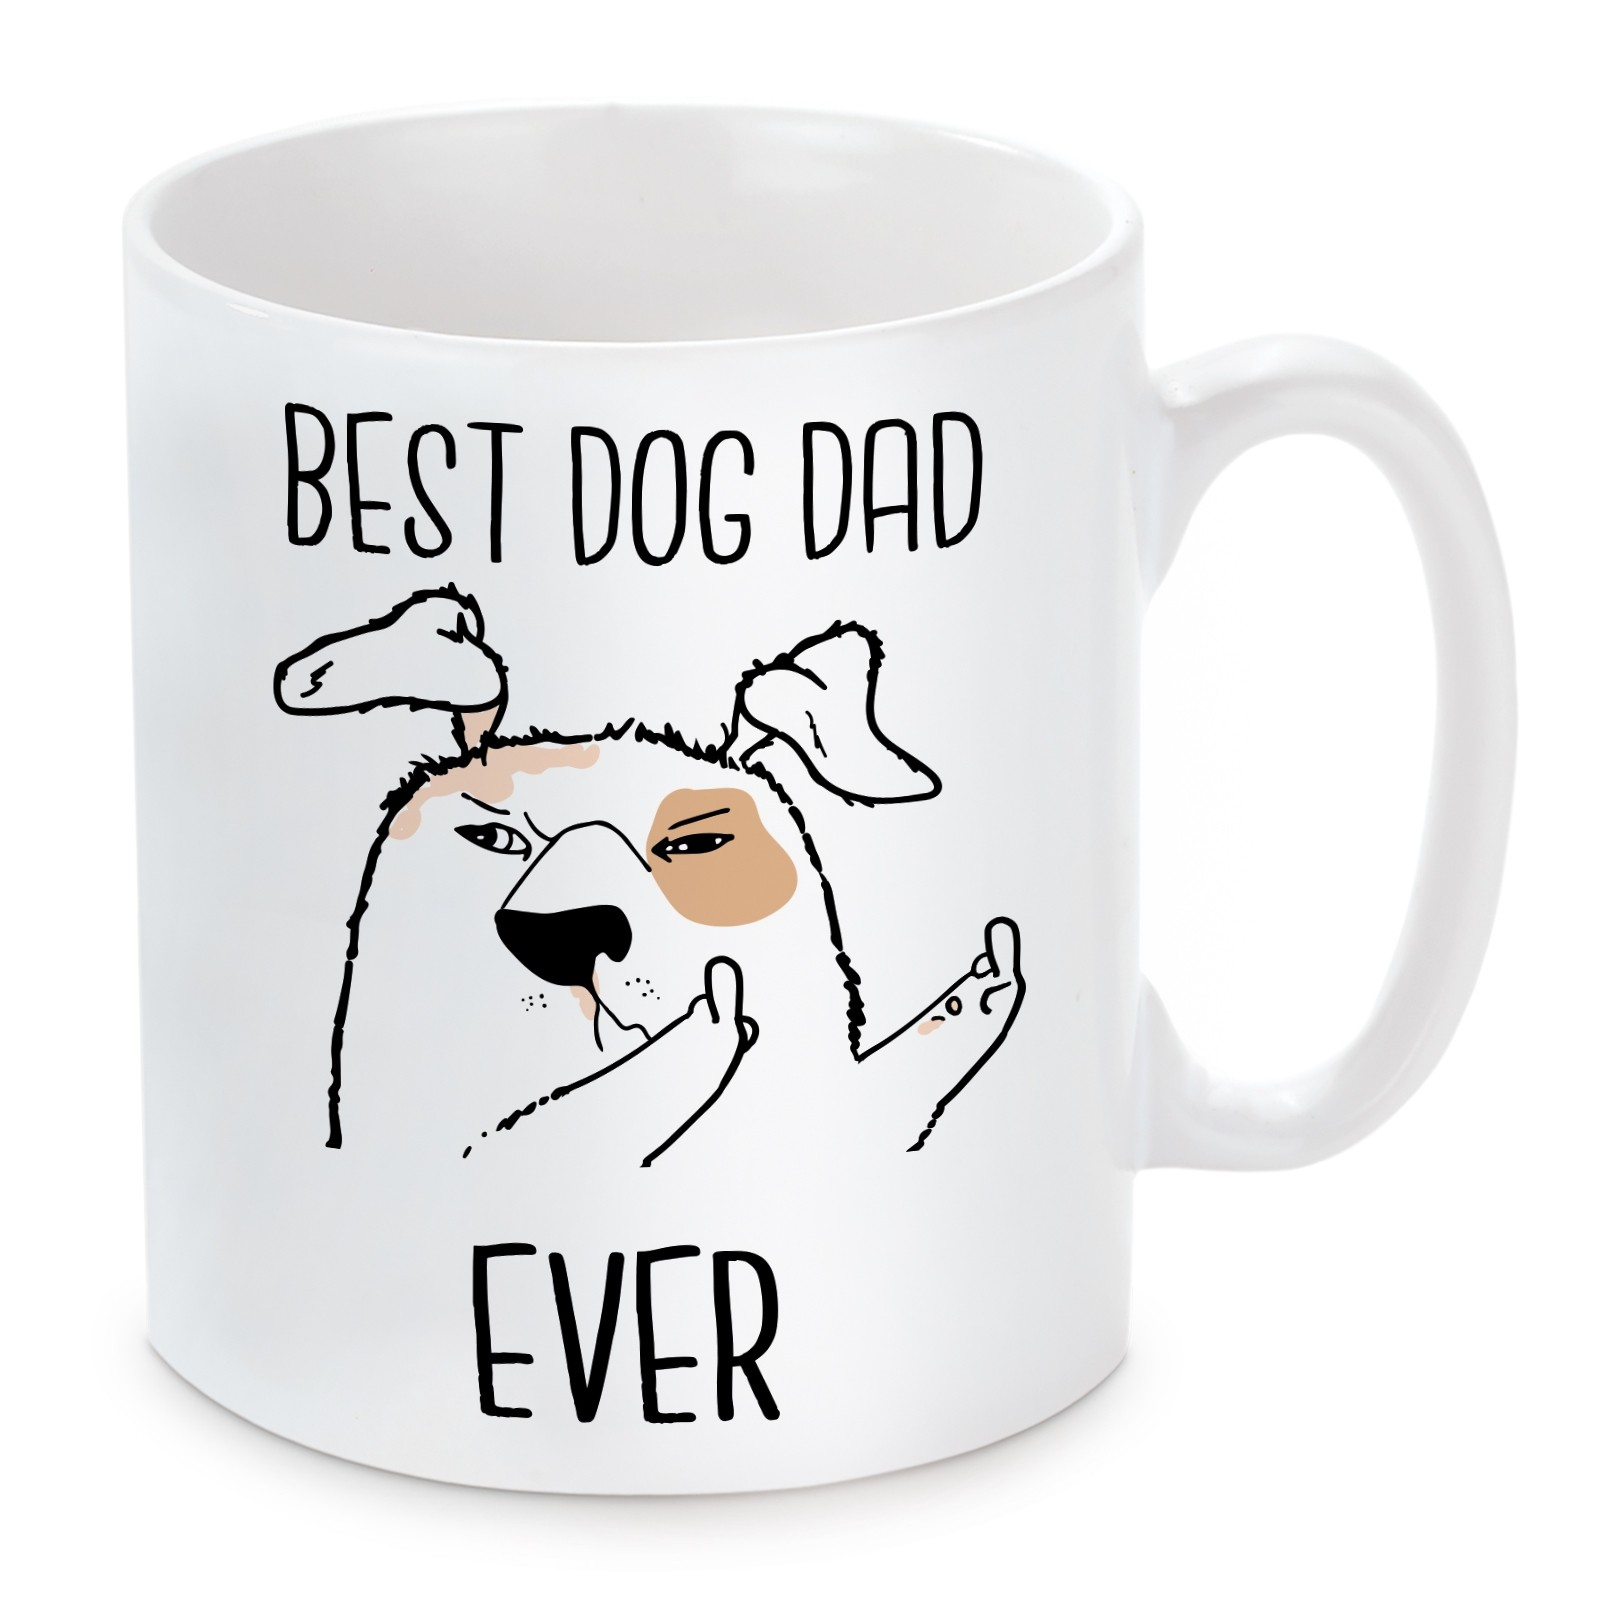 Tasse Modell: Best Dog Dad Ever.